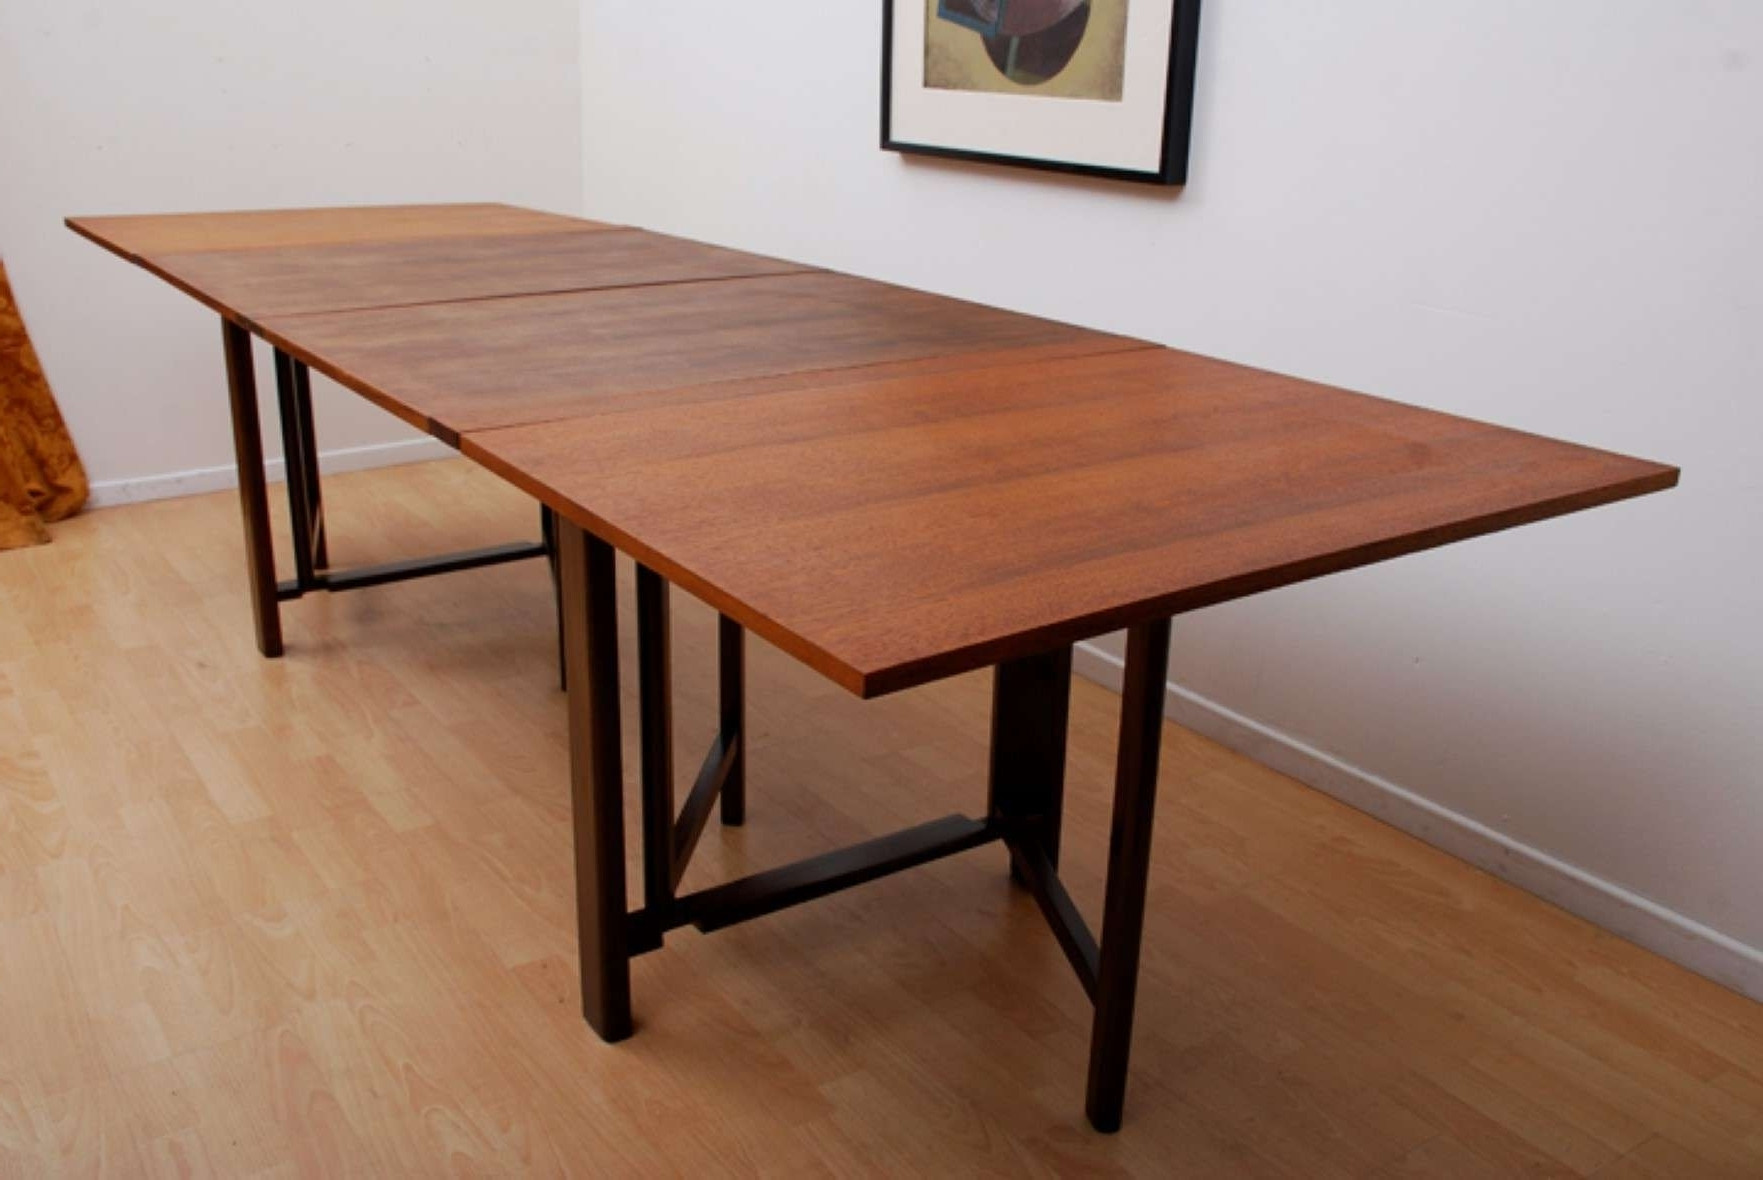 Best ideas about Foldable Dining Table . Save or Pin Folding Dining Table And Chairs Ideas — The Homy Design Now.